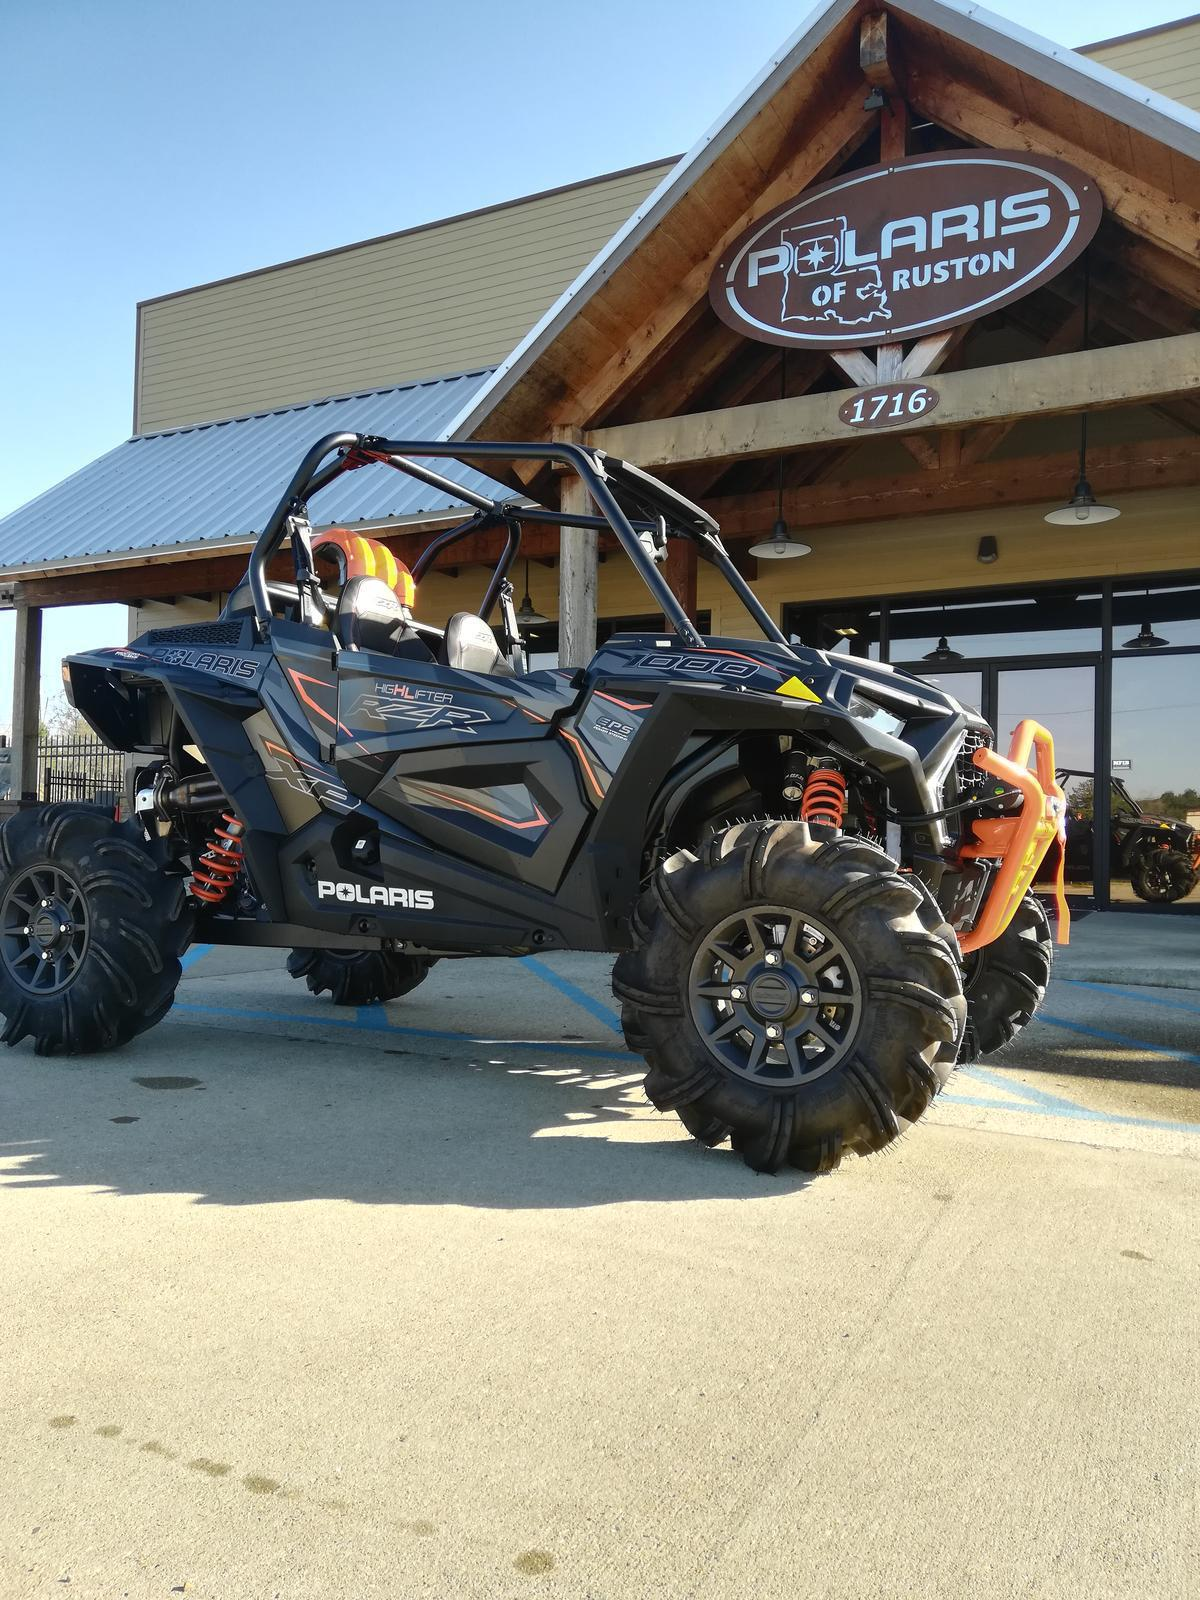 2019 Polaris Industries RANGER XP 1000 EPS HL EDN - STEALTH